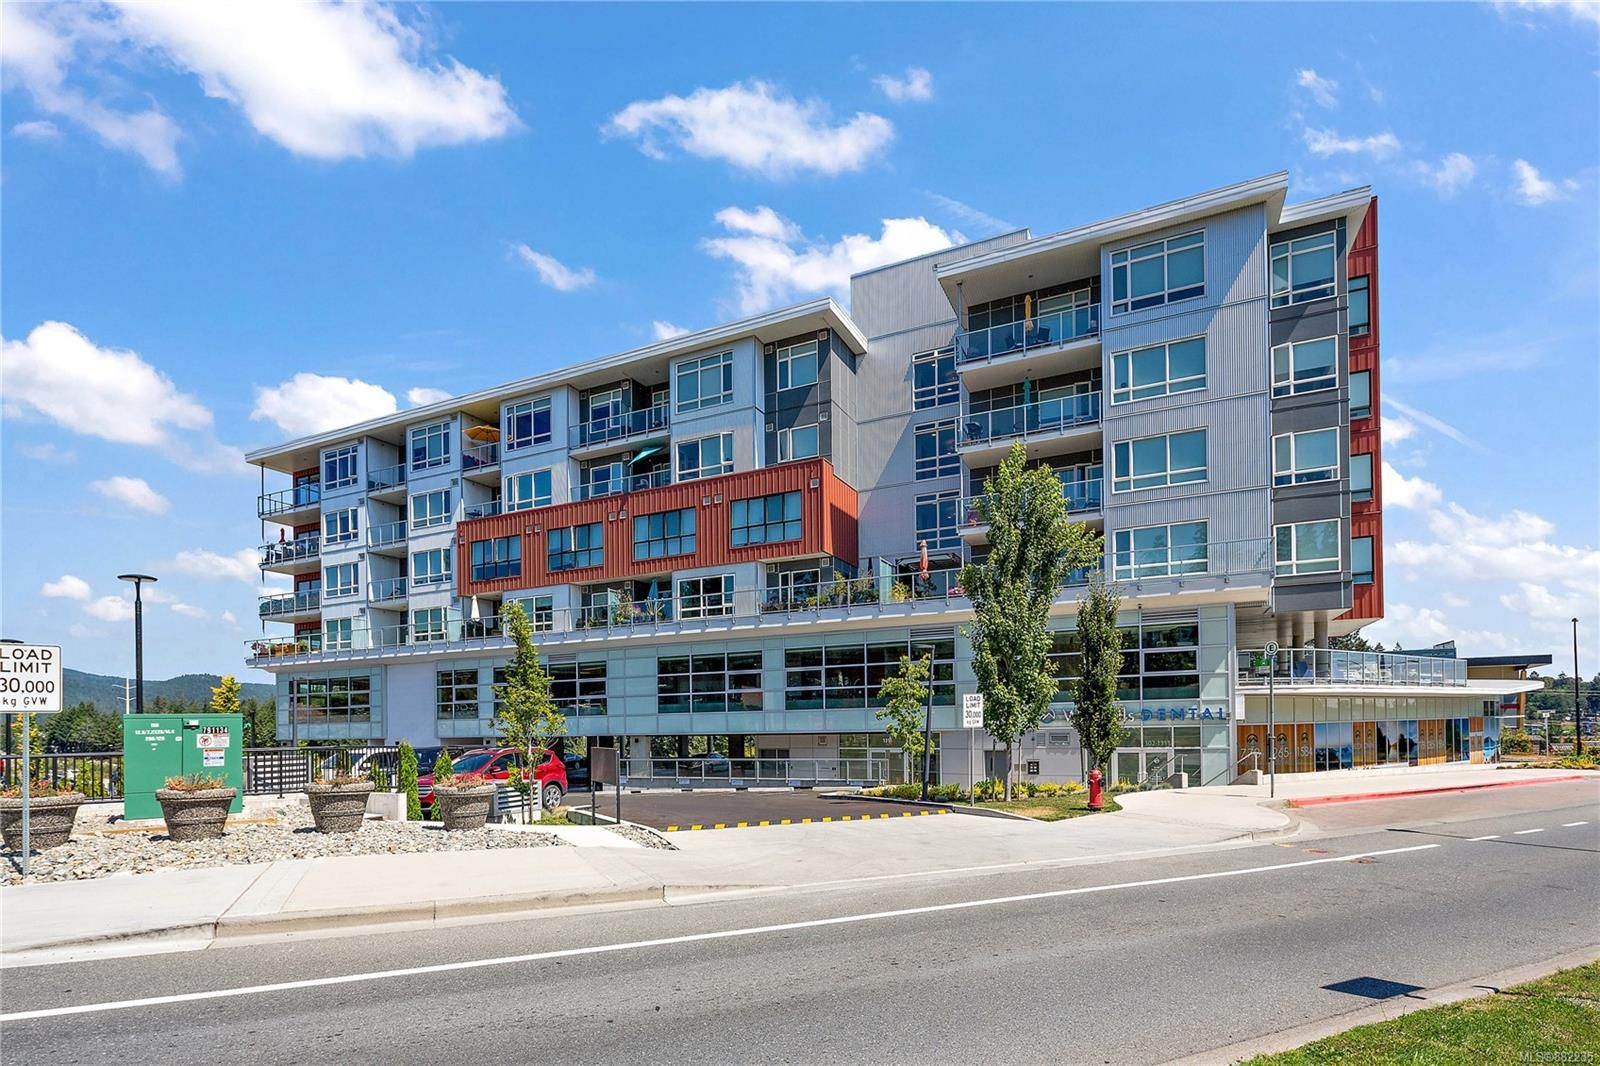 Main Photo: 512 1311 Lakepoint Way in Langford: La Westhills Condo for sale : MLS®# 882235